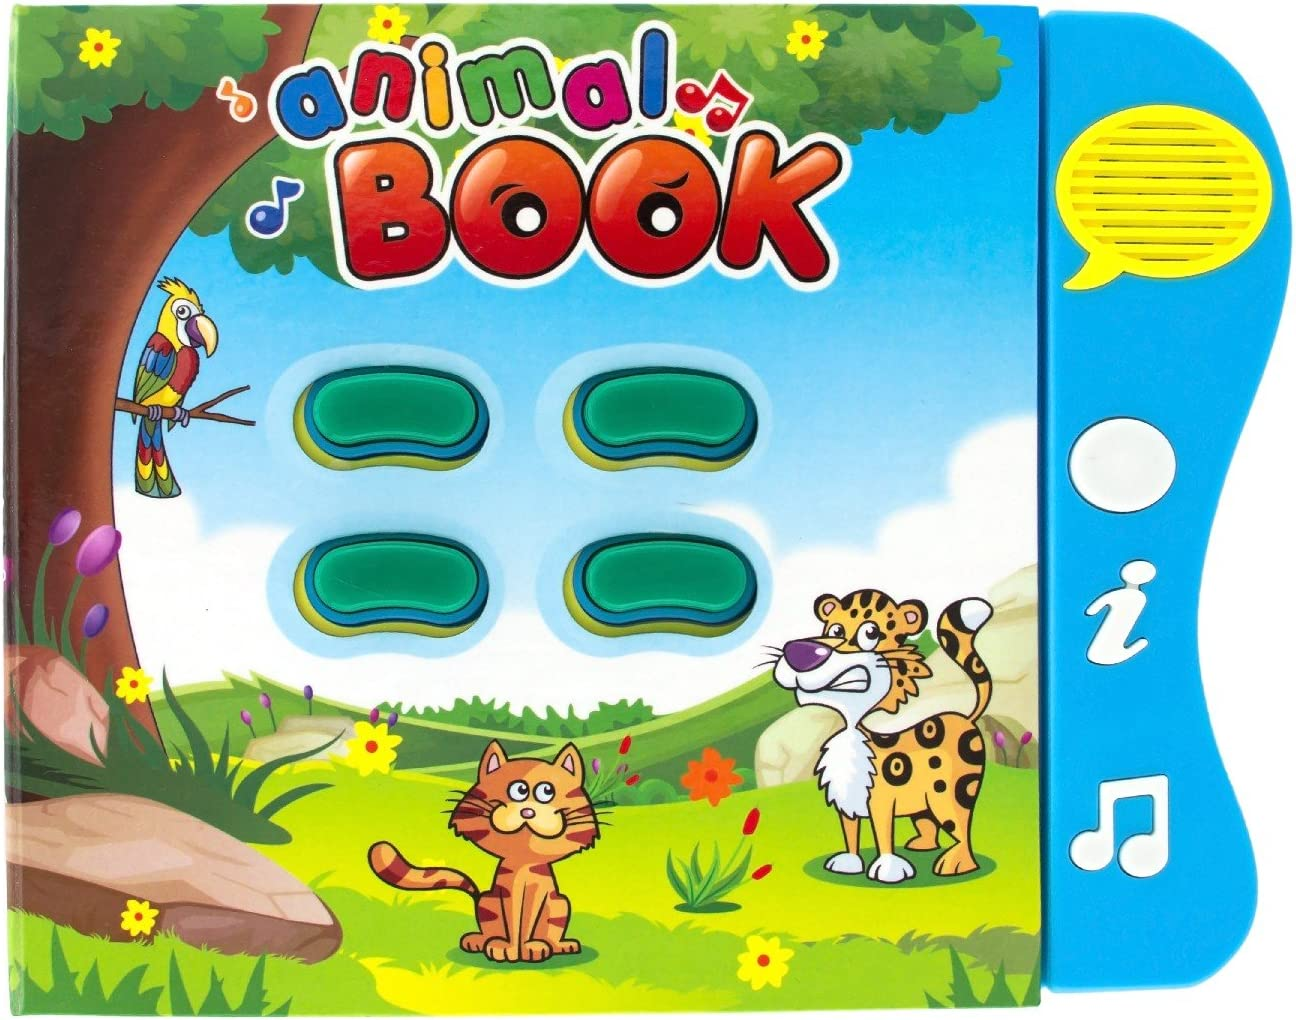 Animal Learning Sound Book Toy for toddlers 6 months to 3 years old. Baby Children Book with Interactive Learning Games and Animal Sounds. Preschool Educational Musical Book and Motor Skills Toy.